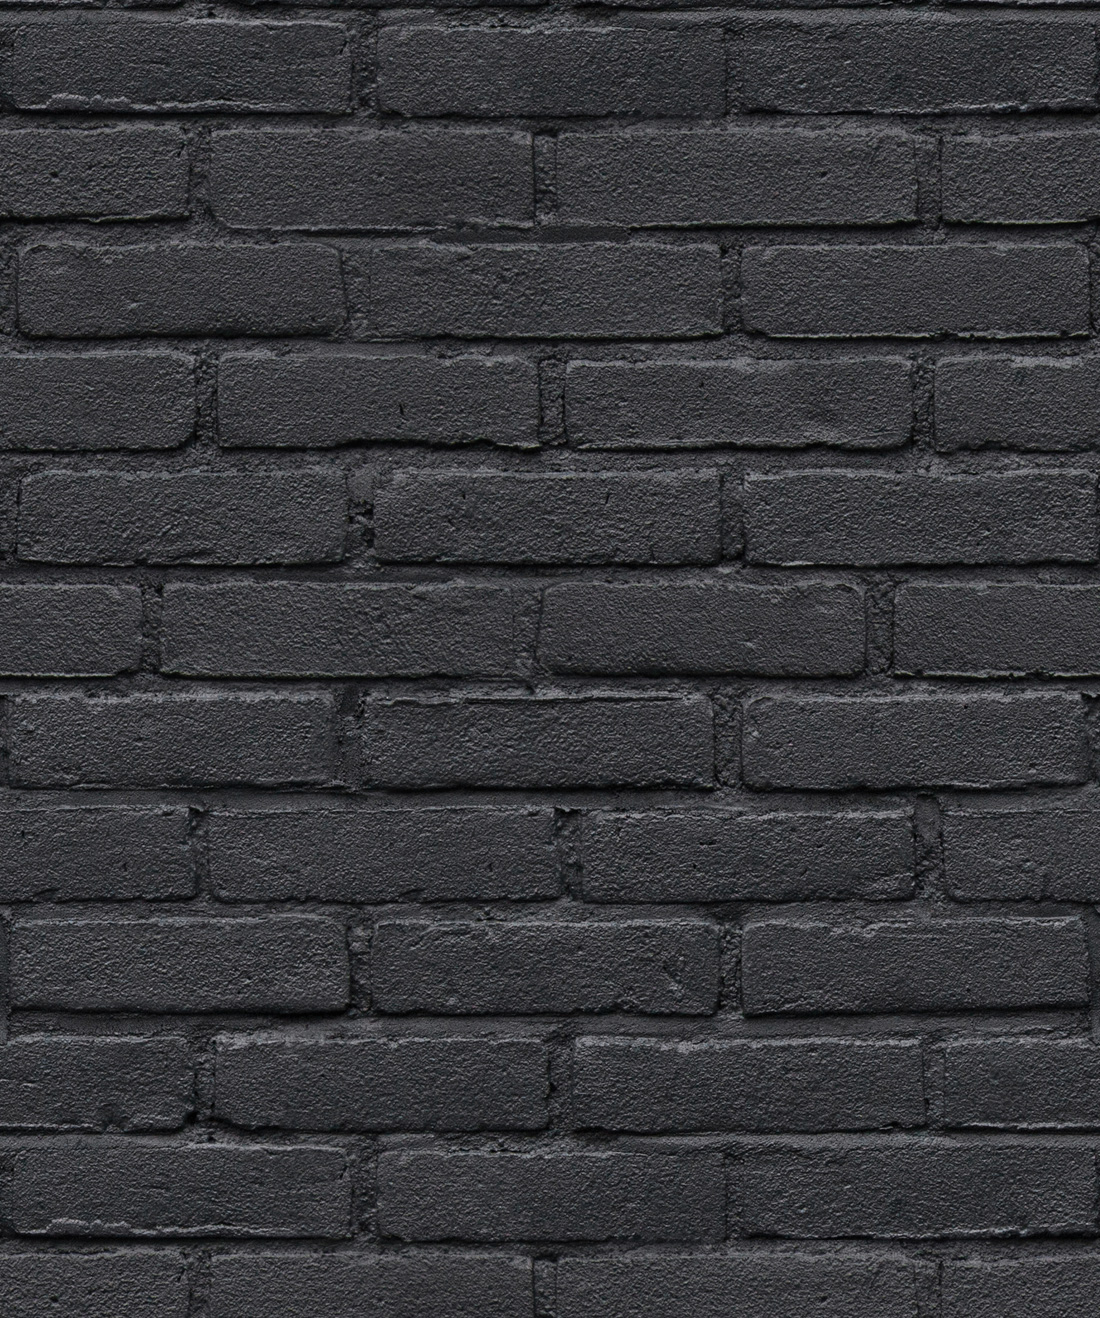 Amsterdam Bricks Wallpaper